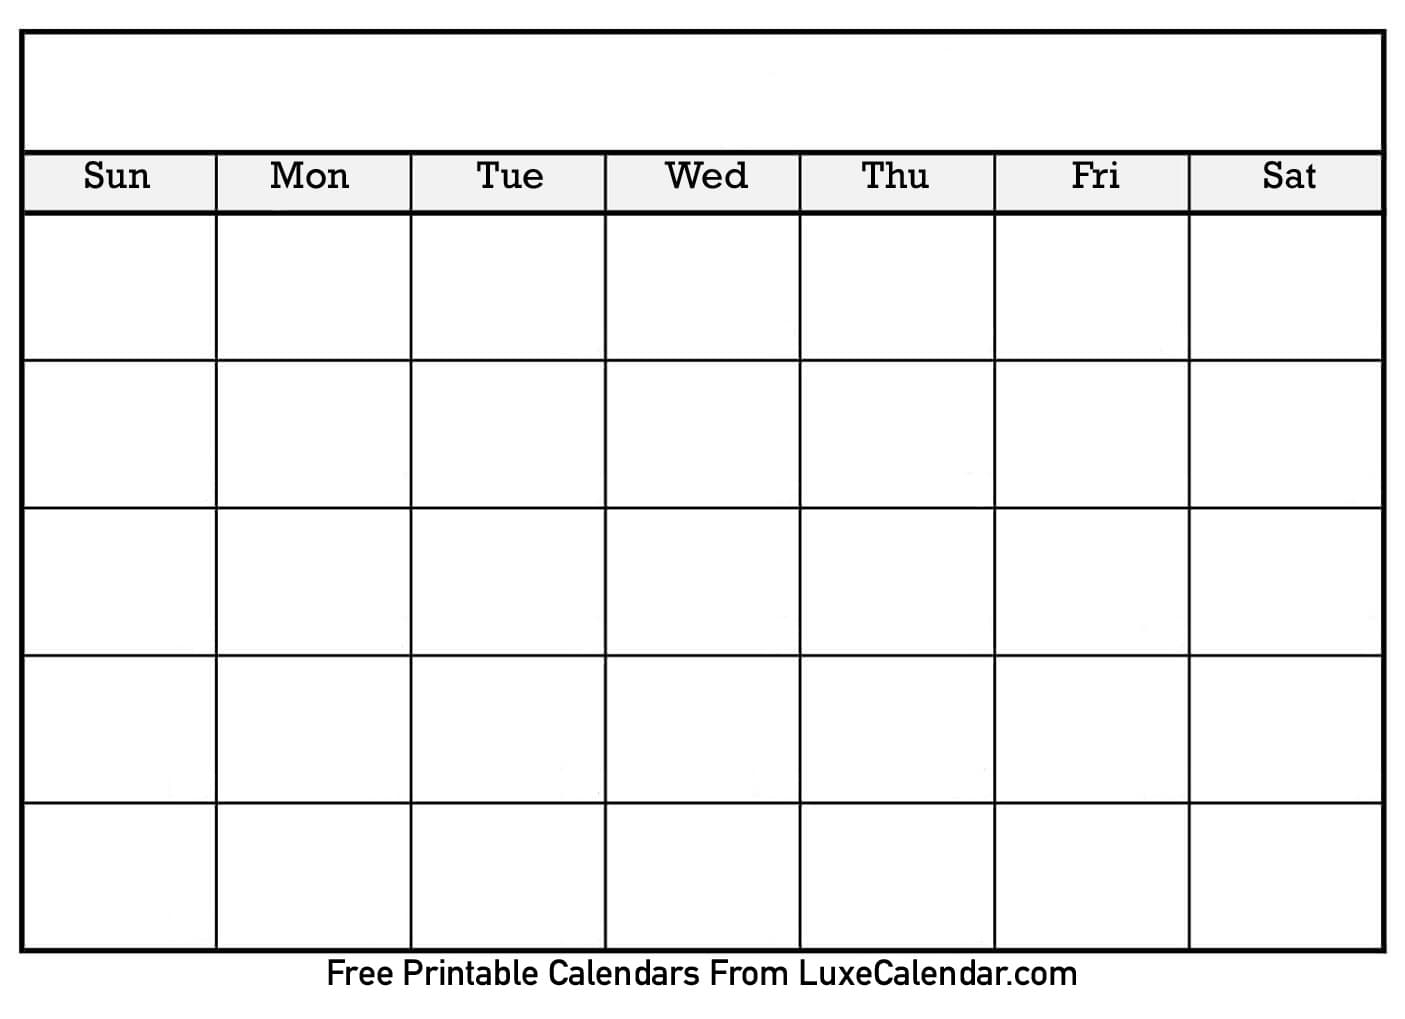 Blank Printable Calendar - Luxe Calendar intended for Printable Blank Monthly Calendar With Lines